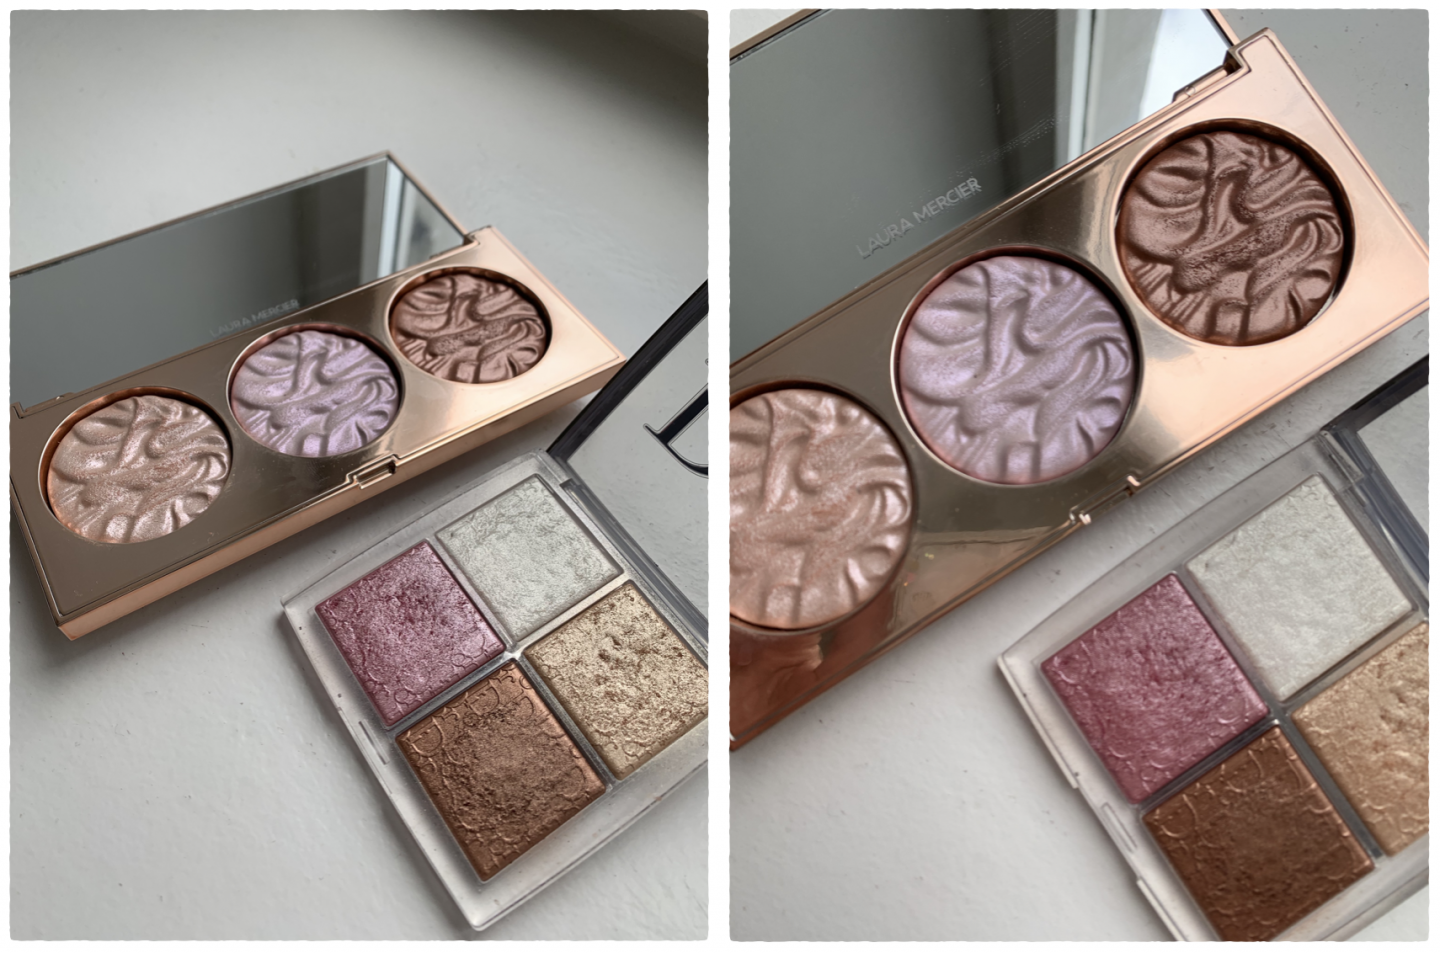 LA LIGHT RADIANT FACE ILLUMINATOR TRIO DE LAURA MERCIER GLOW FACE PALETTE DIOR